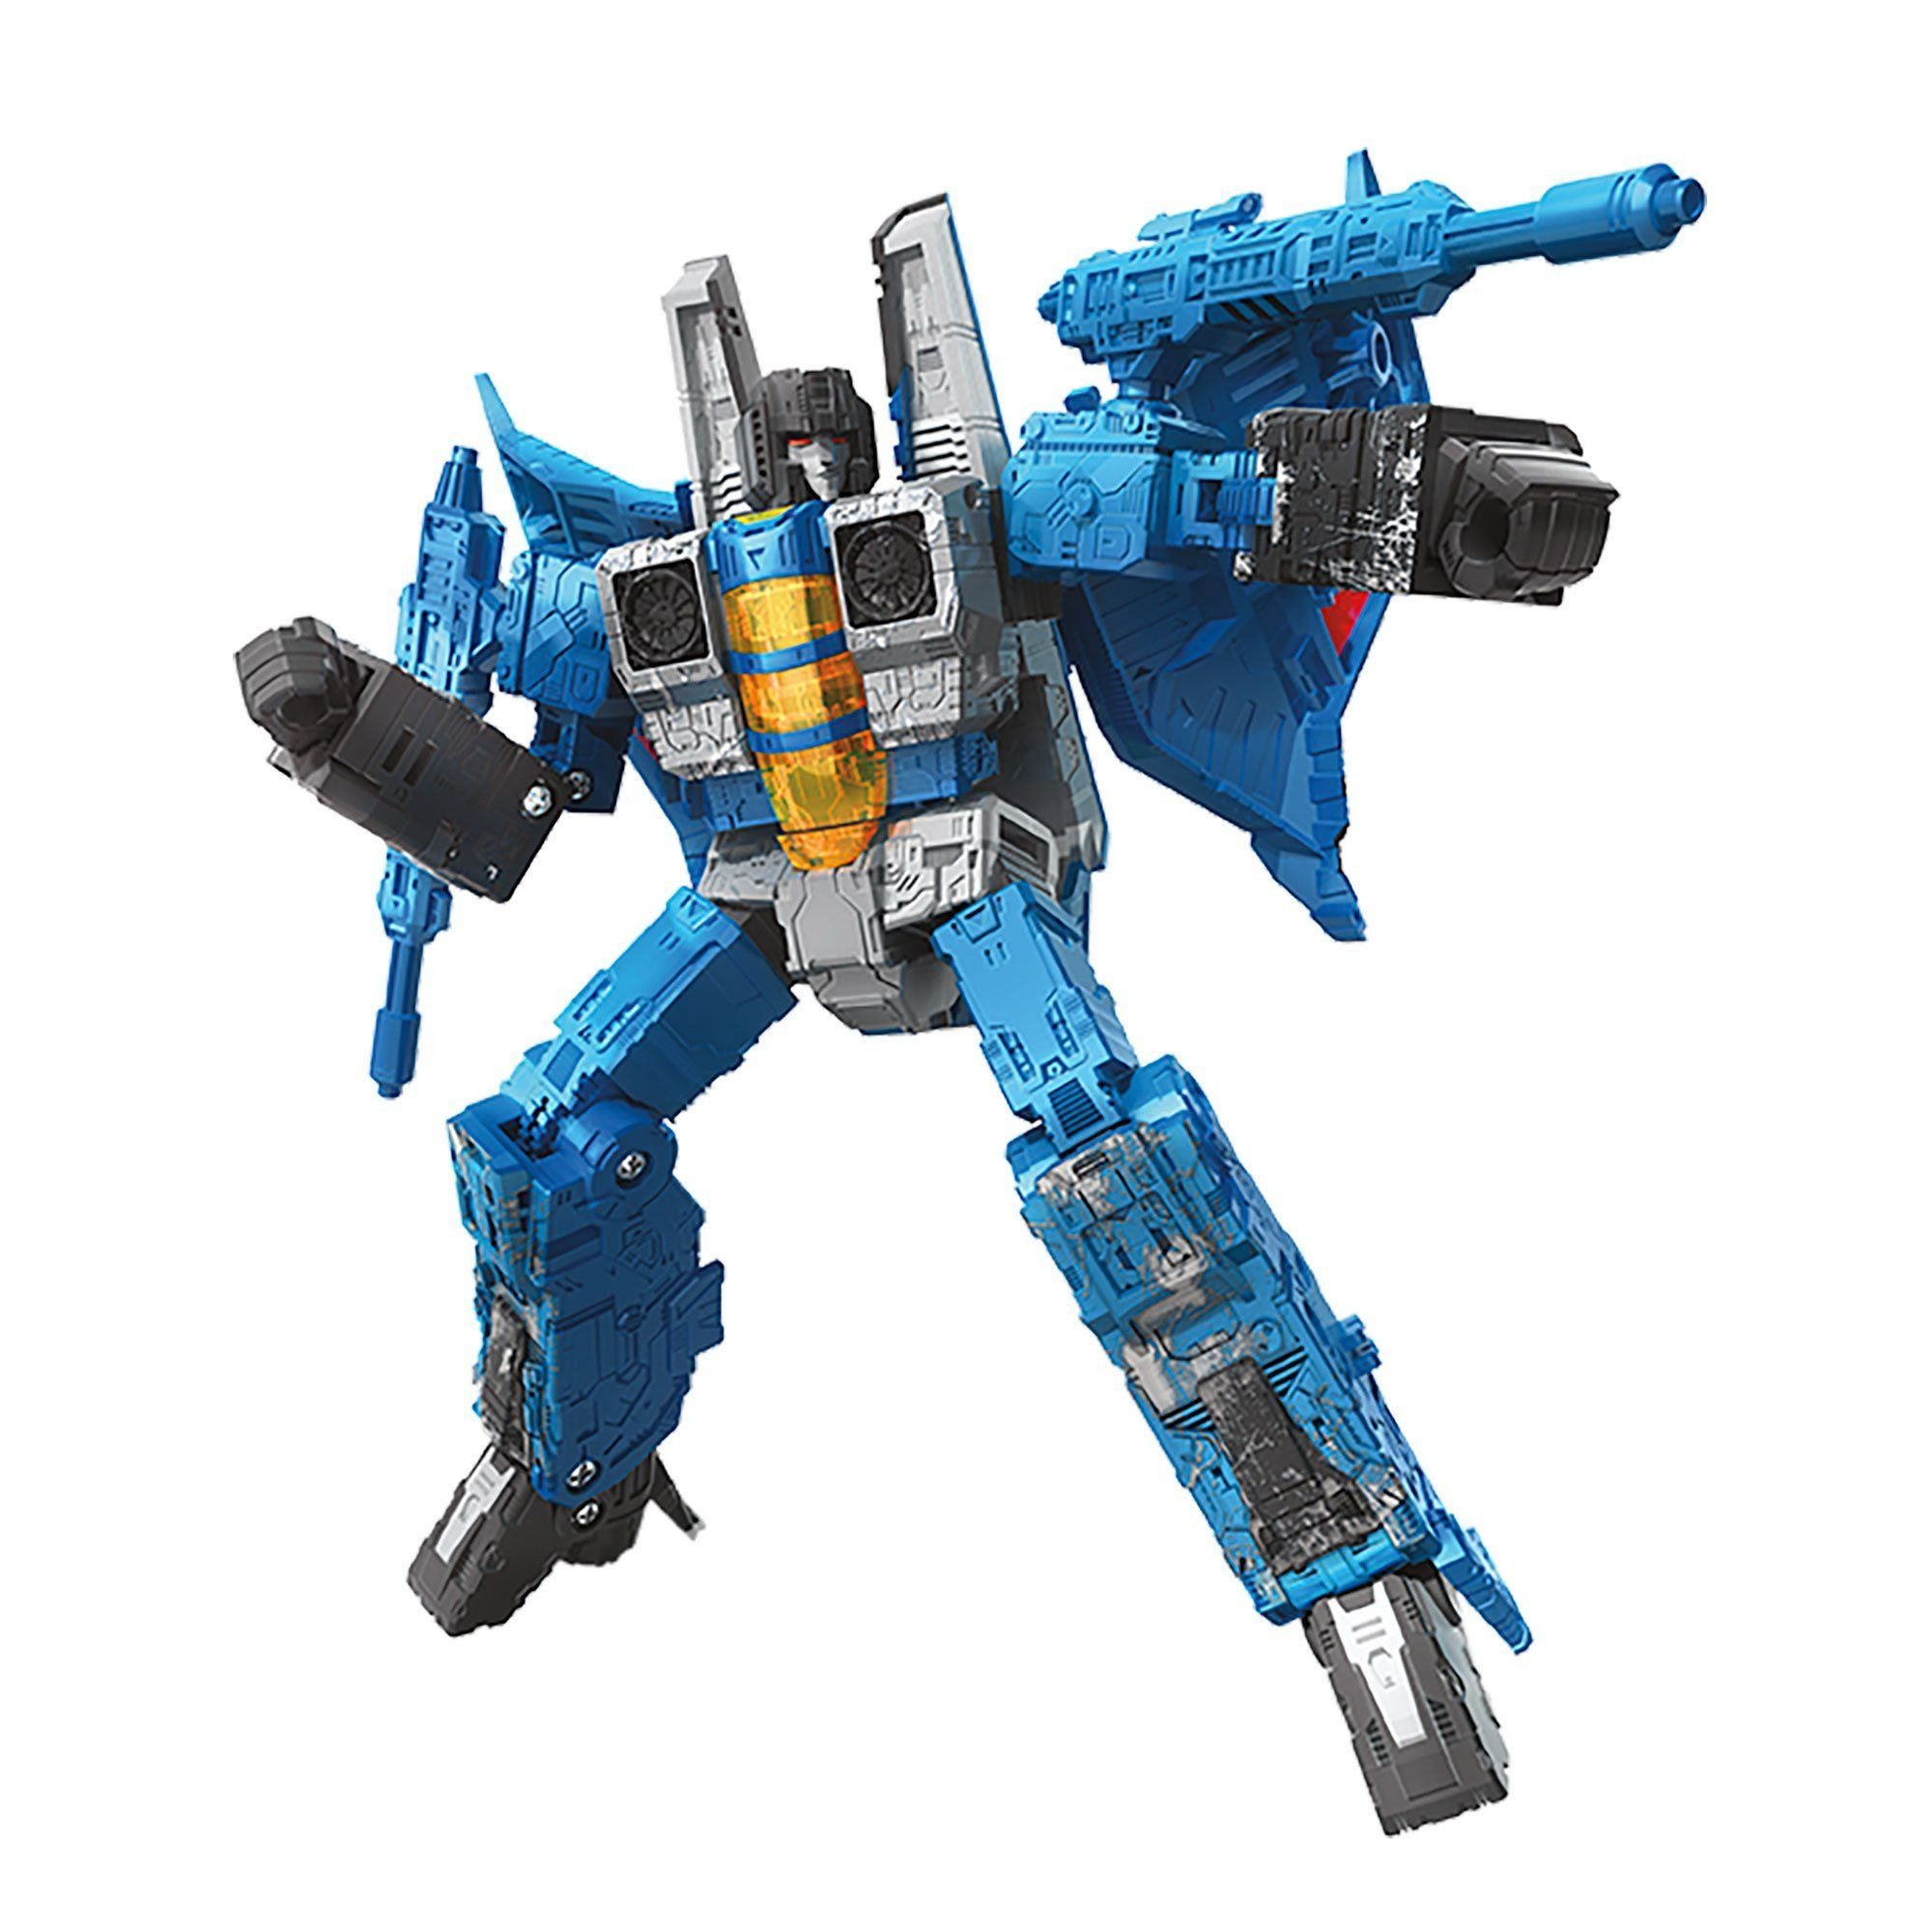 Transformers Generations War For Cybertron Voyager Wfc S39 Thundercrac In 2020 Transformers Toys Transformers Transformers Action Figures